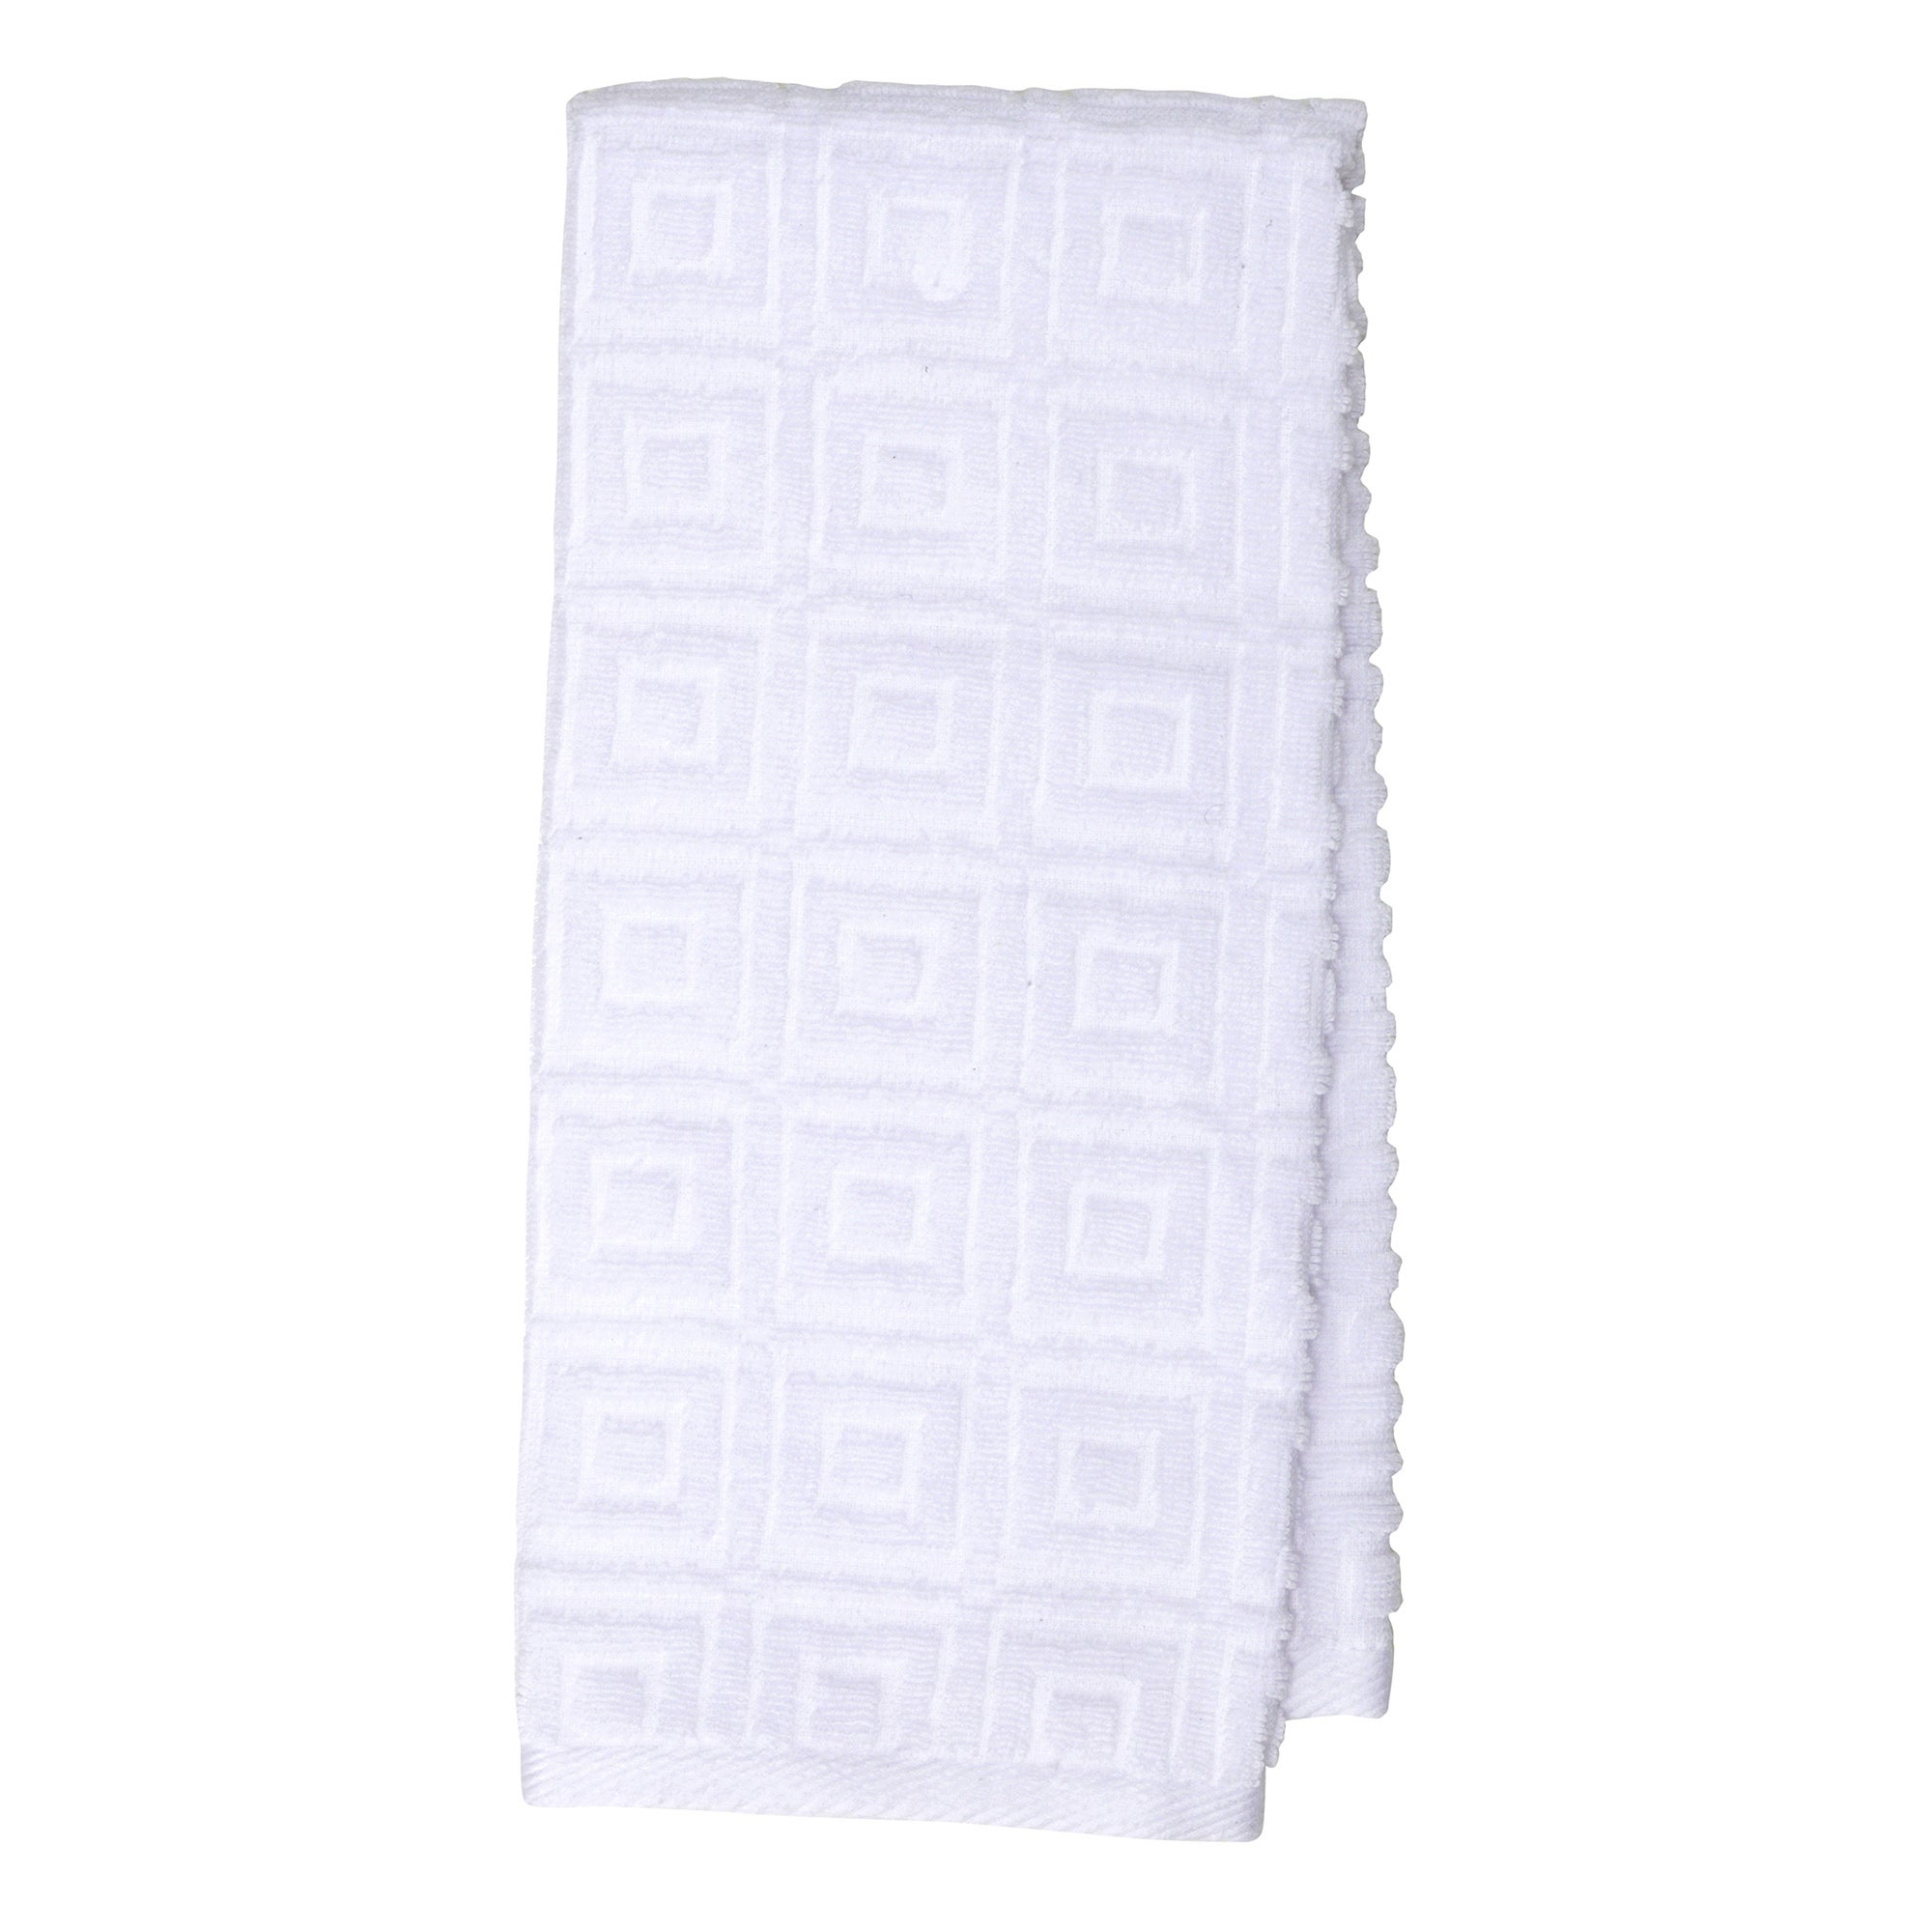 Square Jacquard Tea Towel